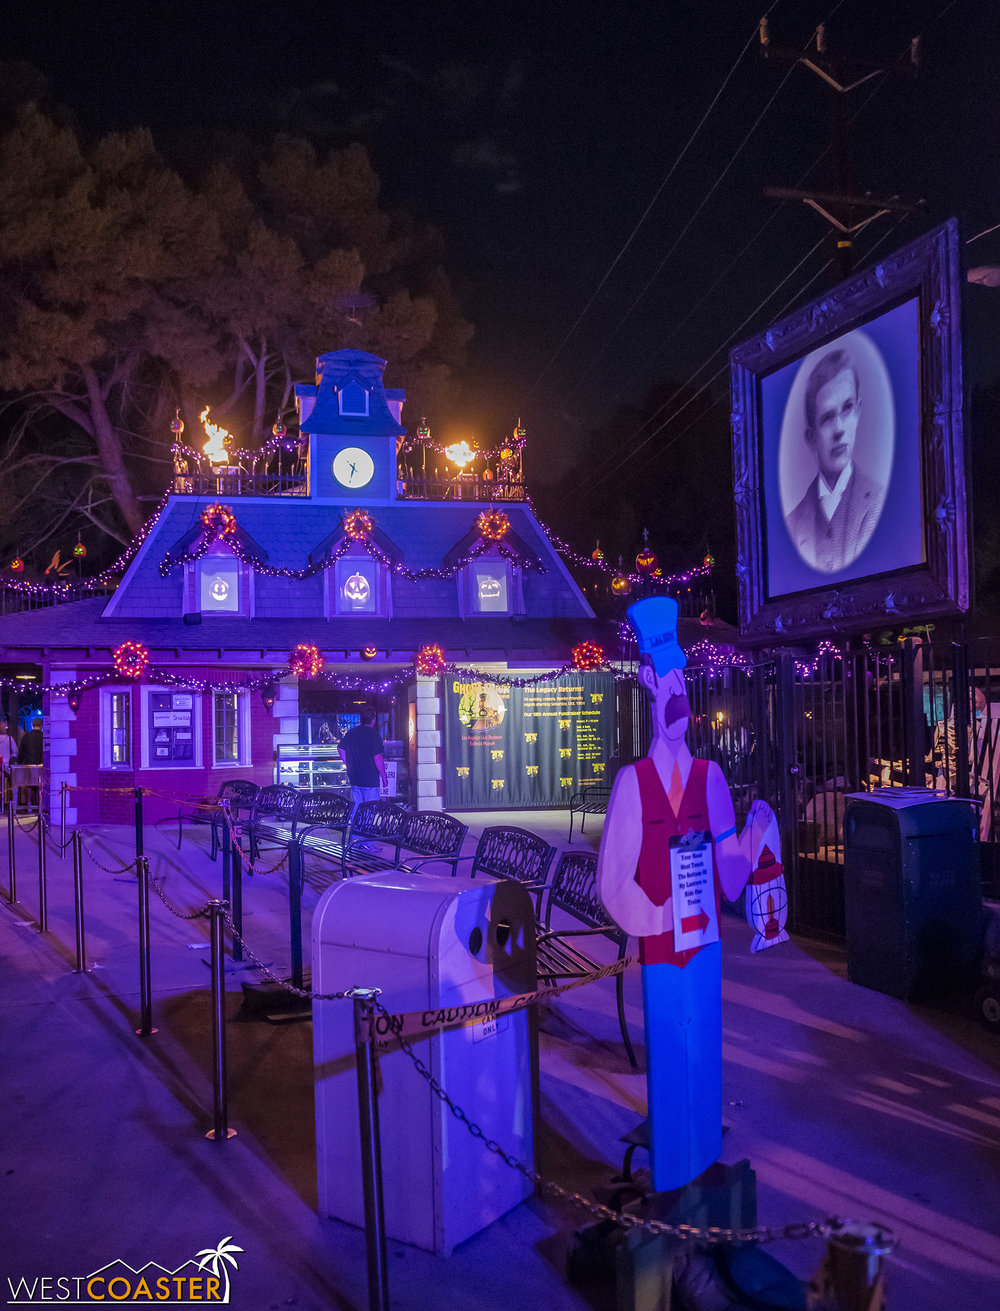 Ghost Train once again delivers a wonderfully delightful experience that's great for the family or for demographics of all ages who simply love Halloween!